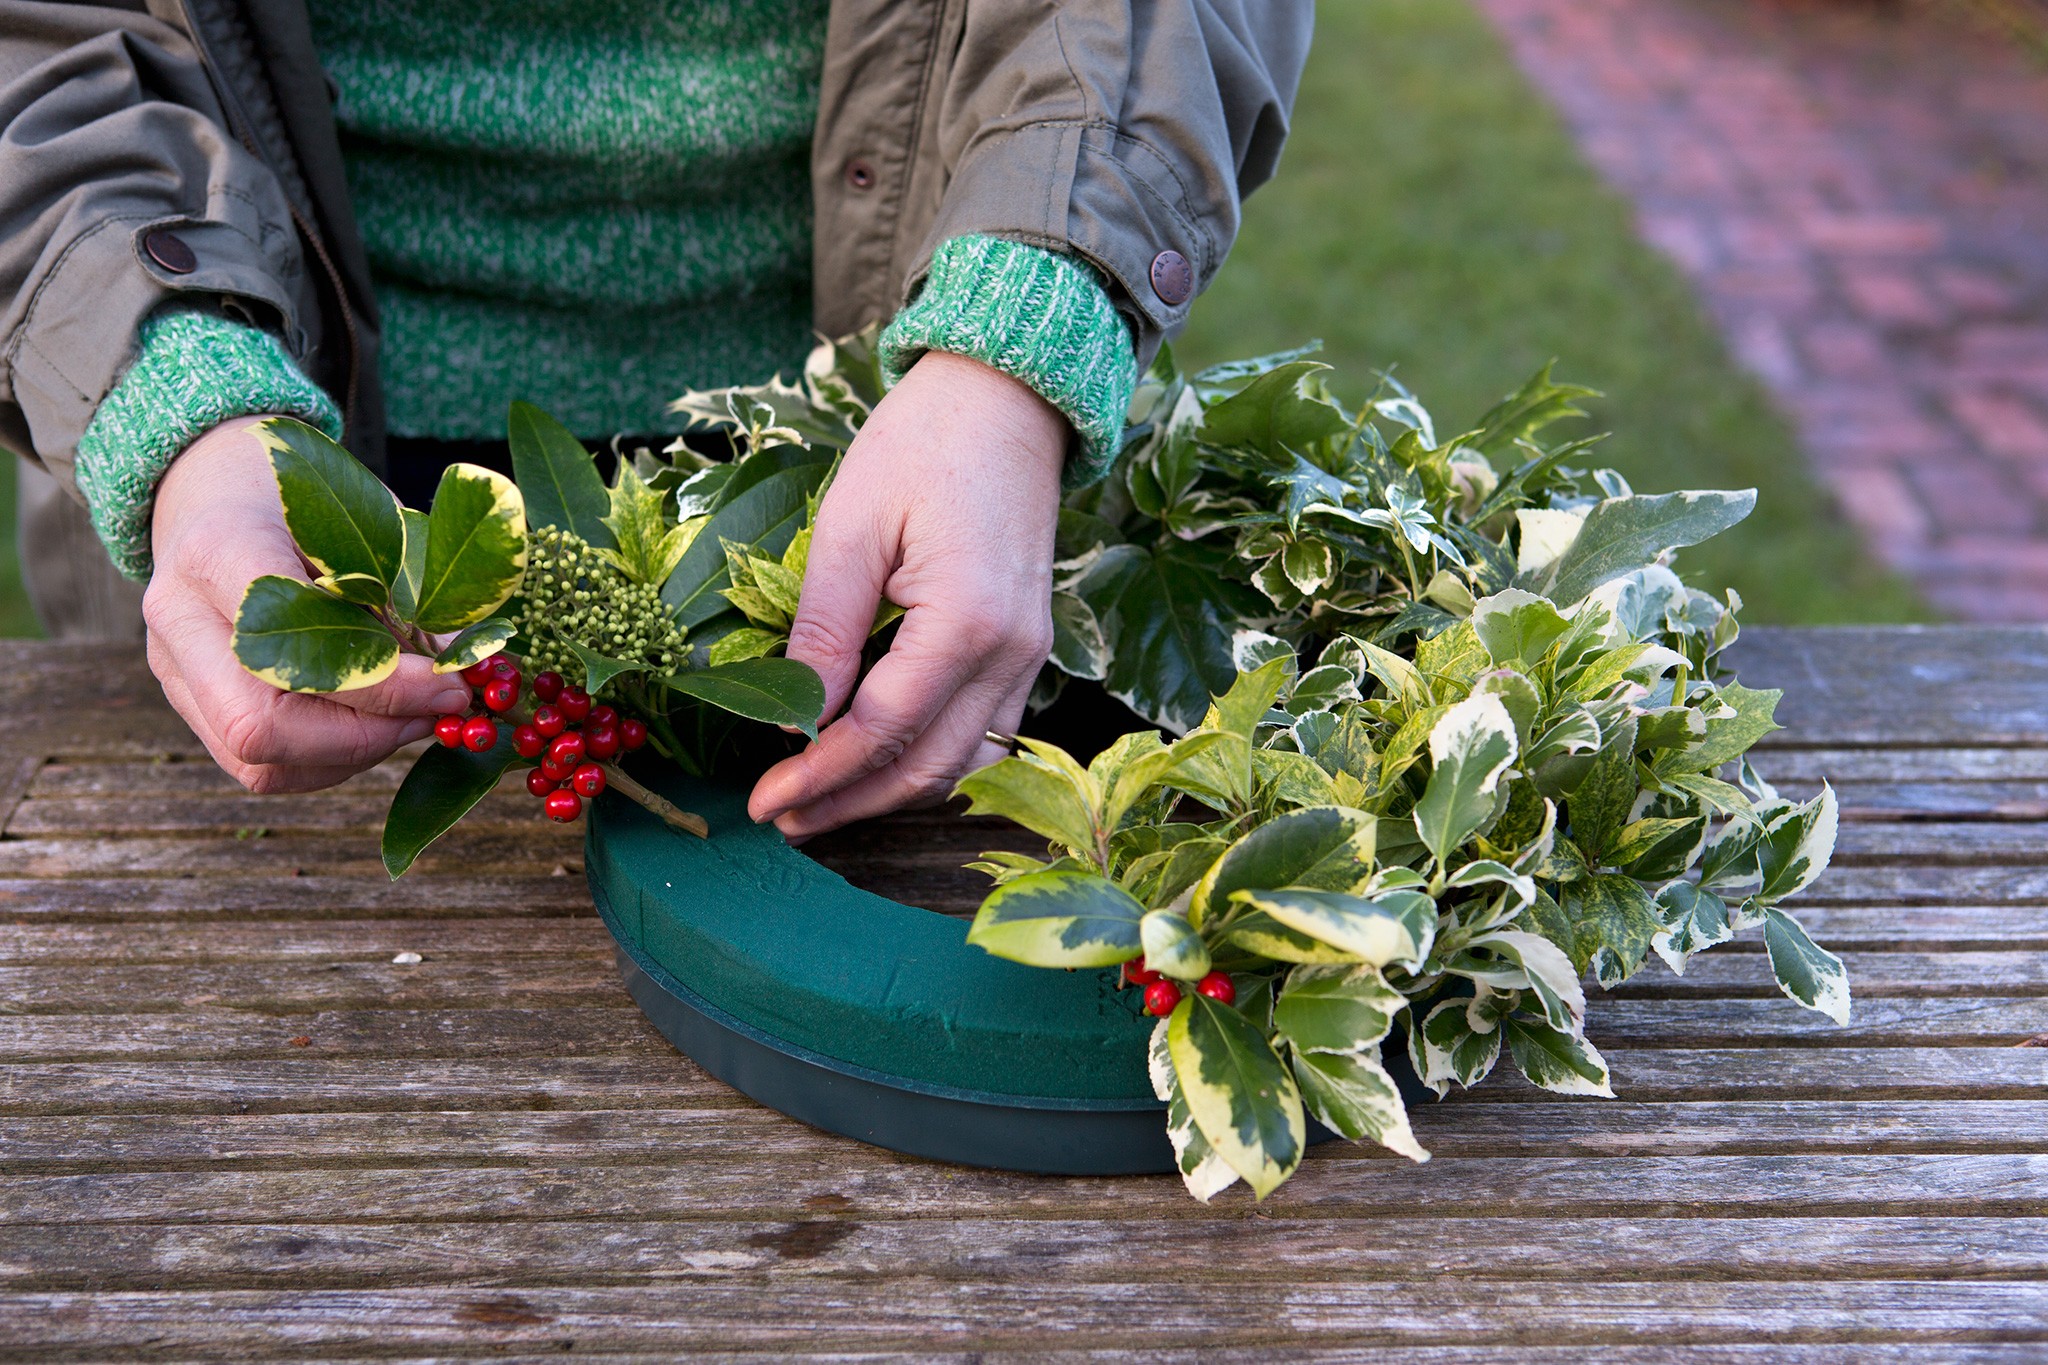 inserting-a-sprig-of-holly-2